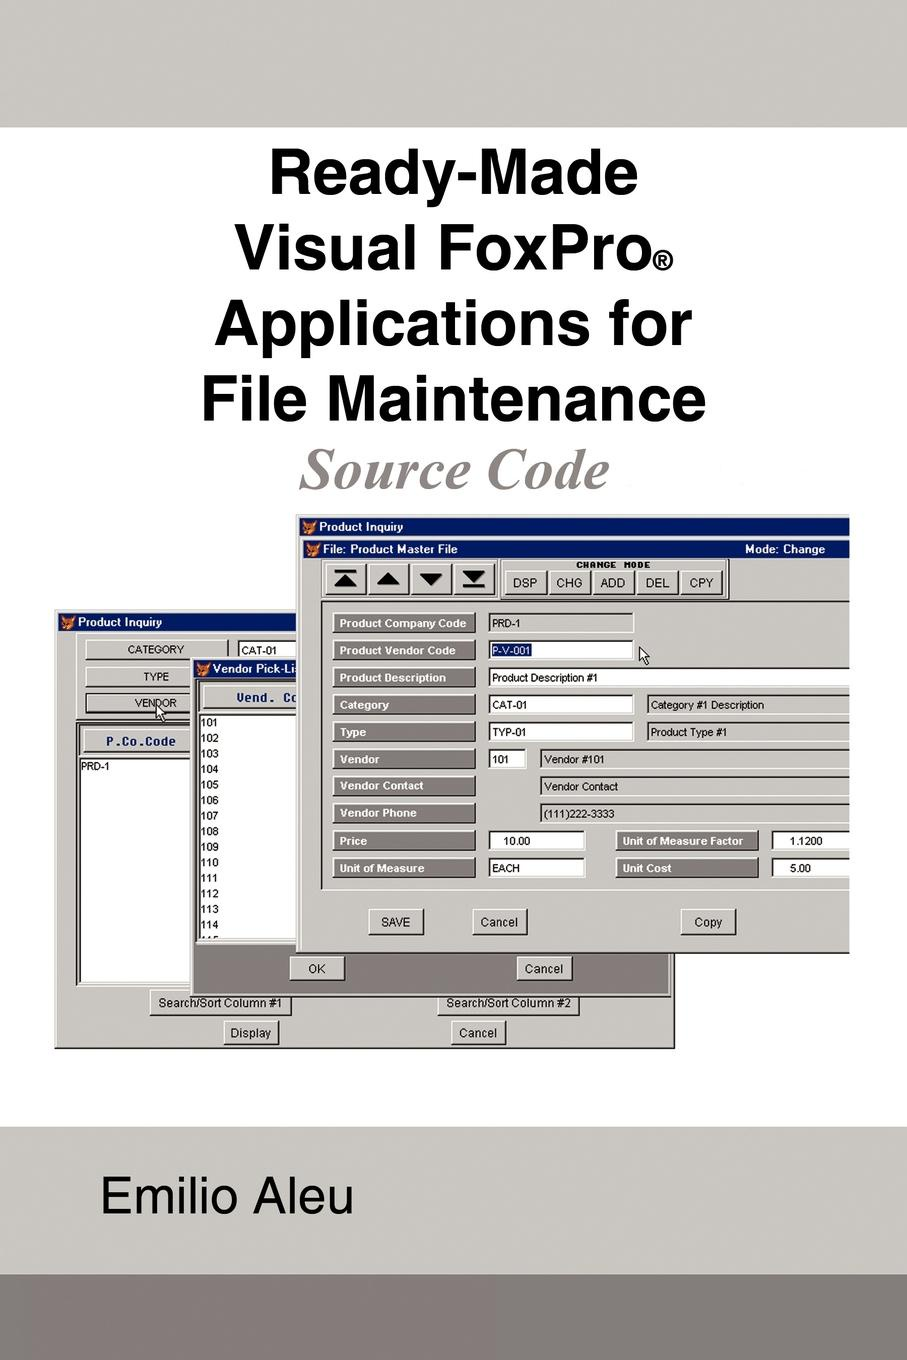 купить Emilio Aleu Ready-Made Visual FoxPro Applications for File Maintenance. Source Code по цене 1639 рублей